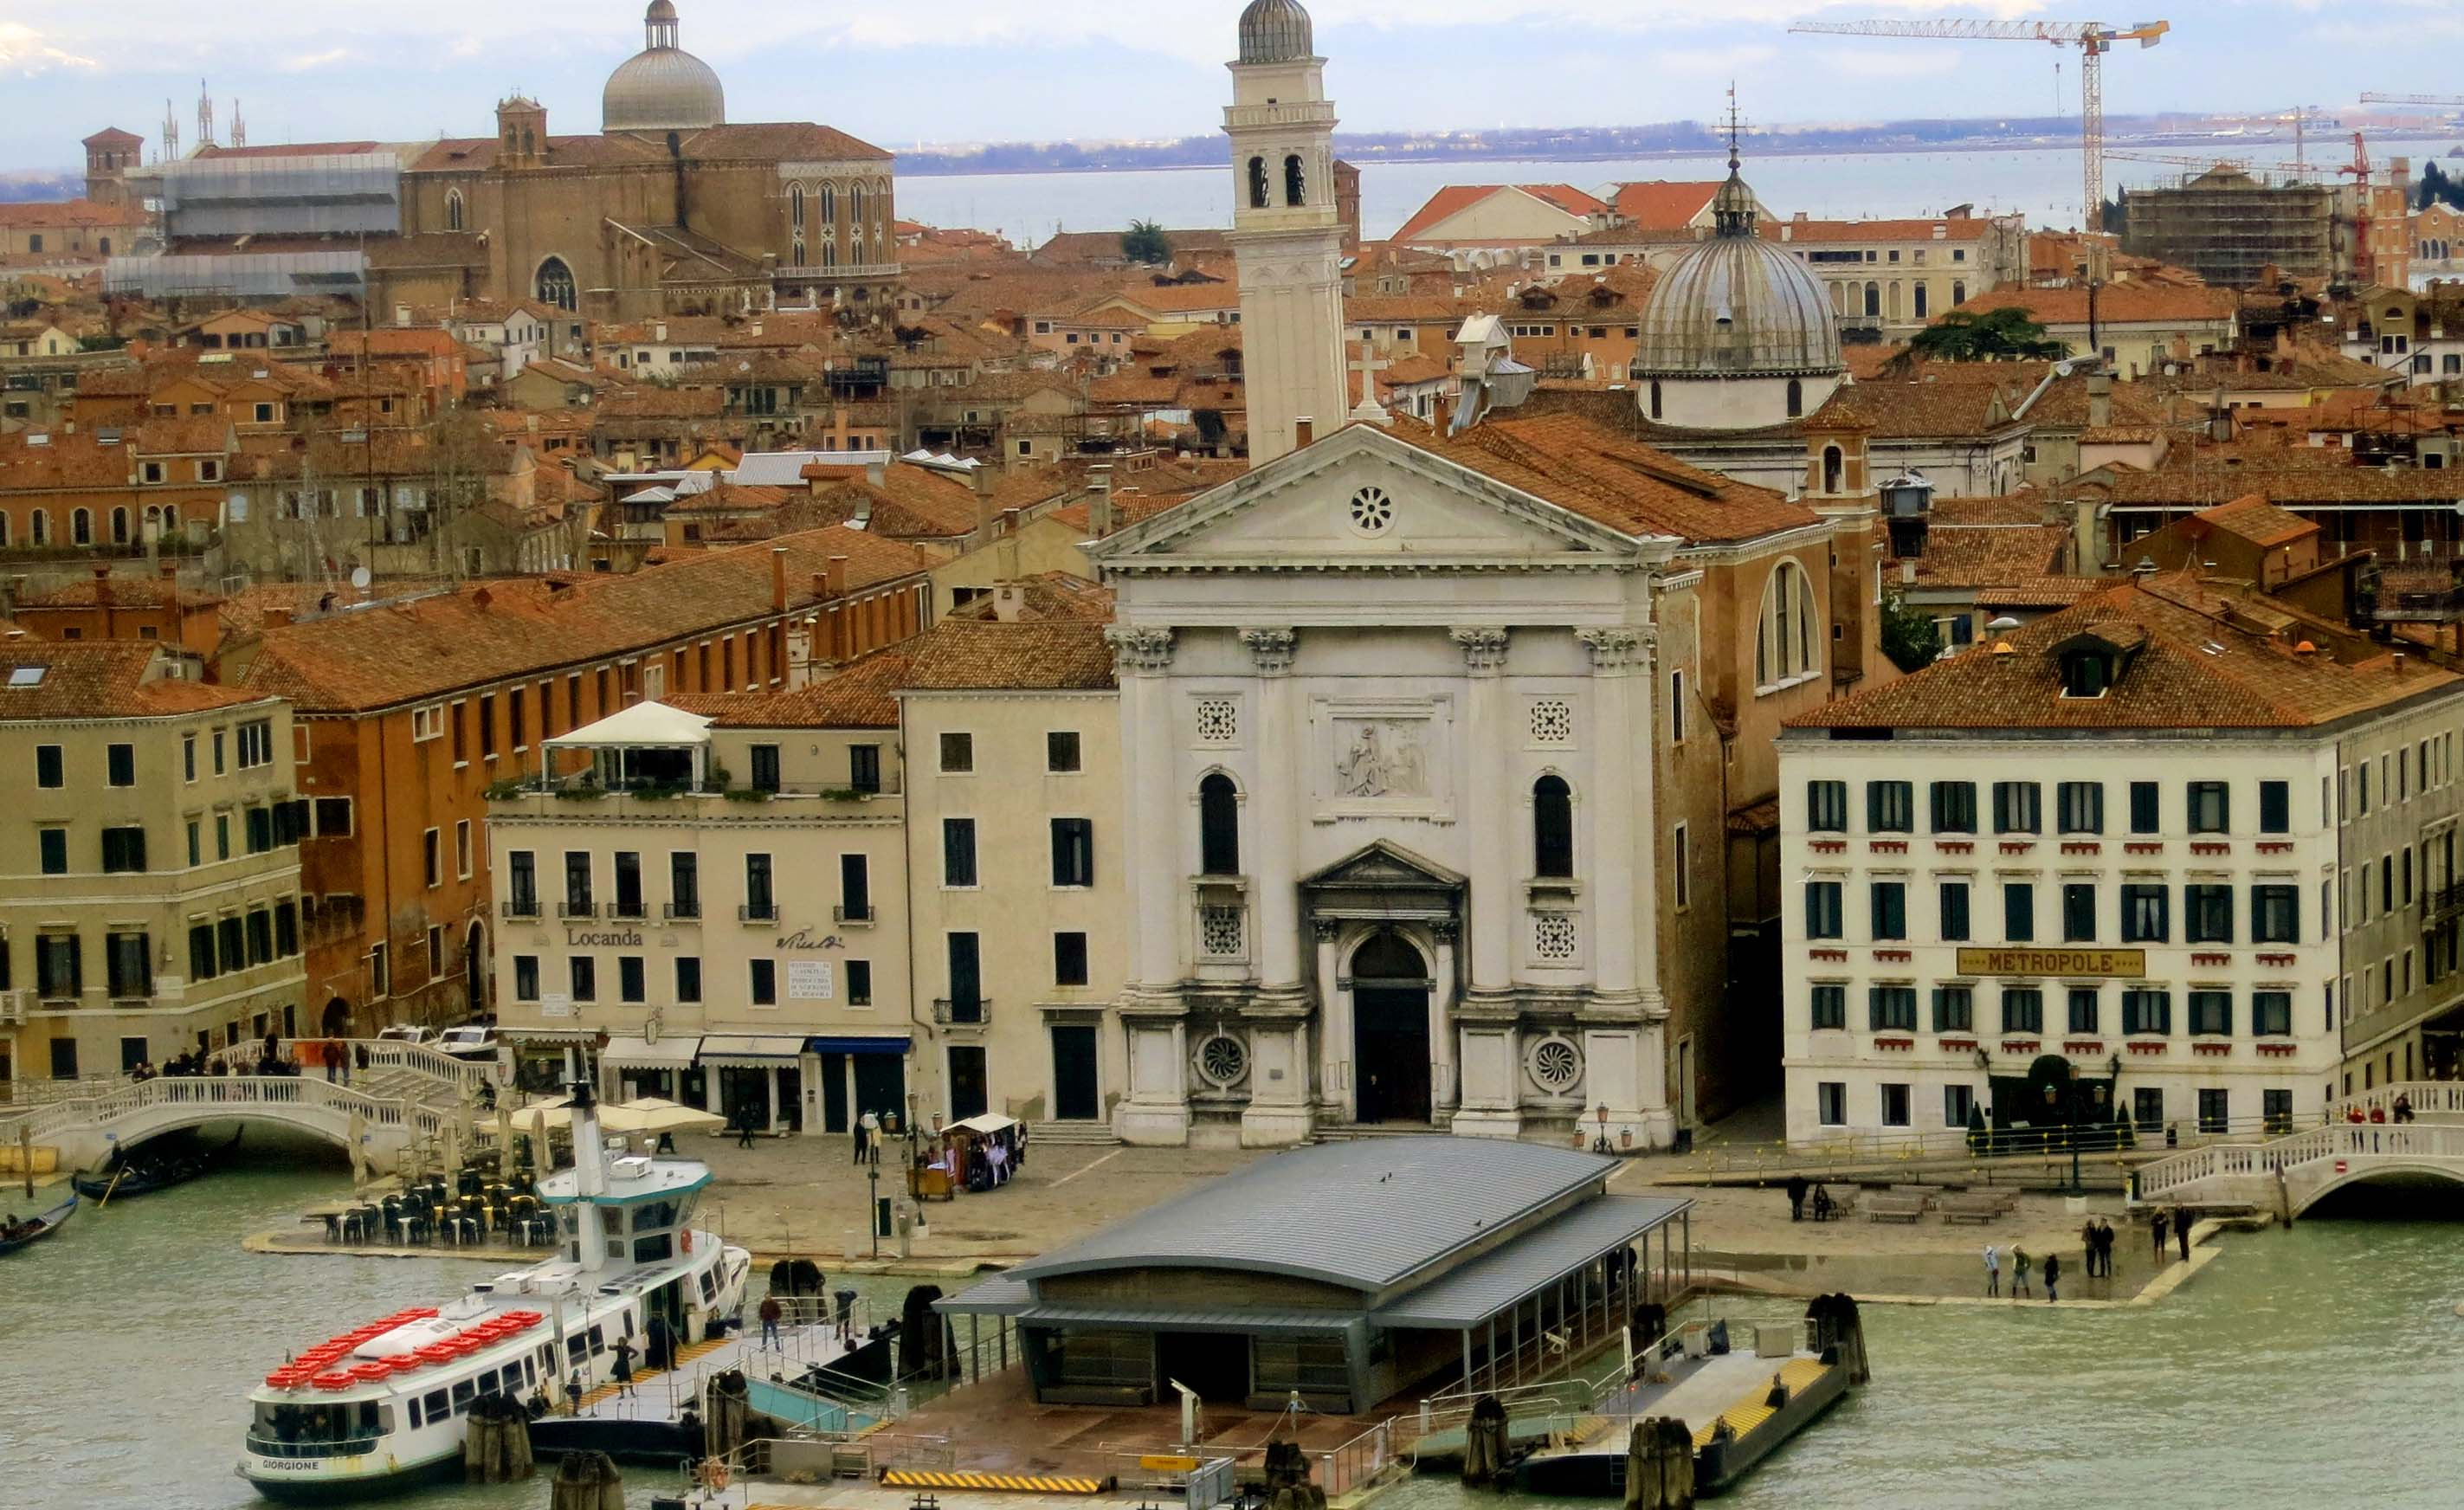 Perched on the top deck of the Crown Princess, it was easy to see that Venice is an island, a relatively small island. Plopped down on a marsh, it is sinking into the sea at about 9 inches per century. Vivaldi, BTW, once offered music lessons at the Hotel Metropole on the right.